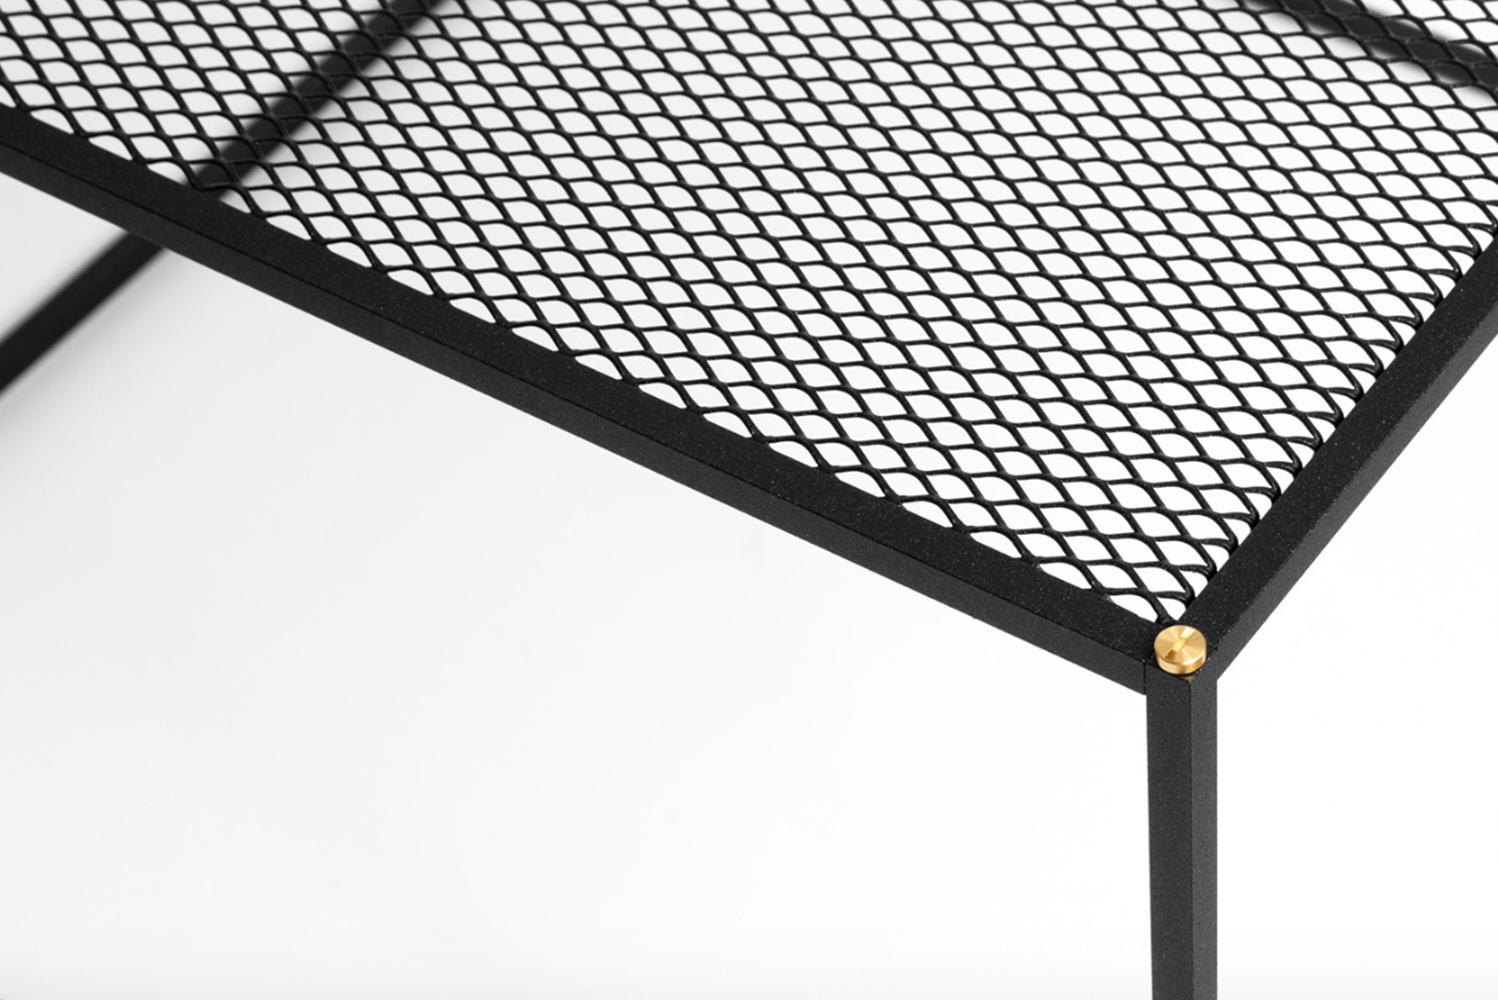 Each piece is crafted from solid black steel and perforated mesh, constructed to diffuse surrounding walls and floors, rather than hide them.